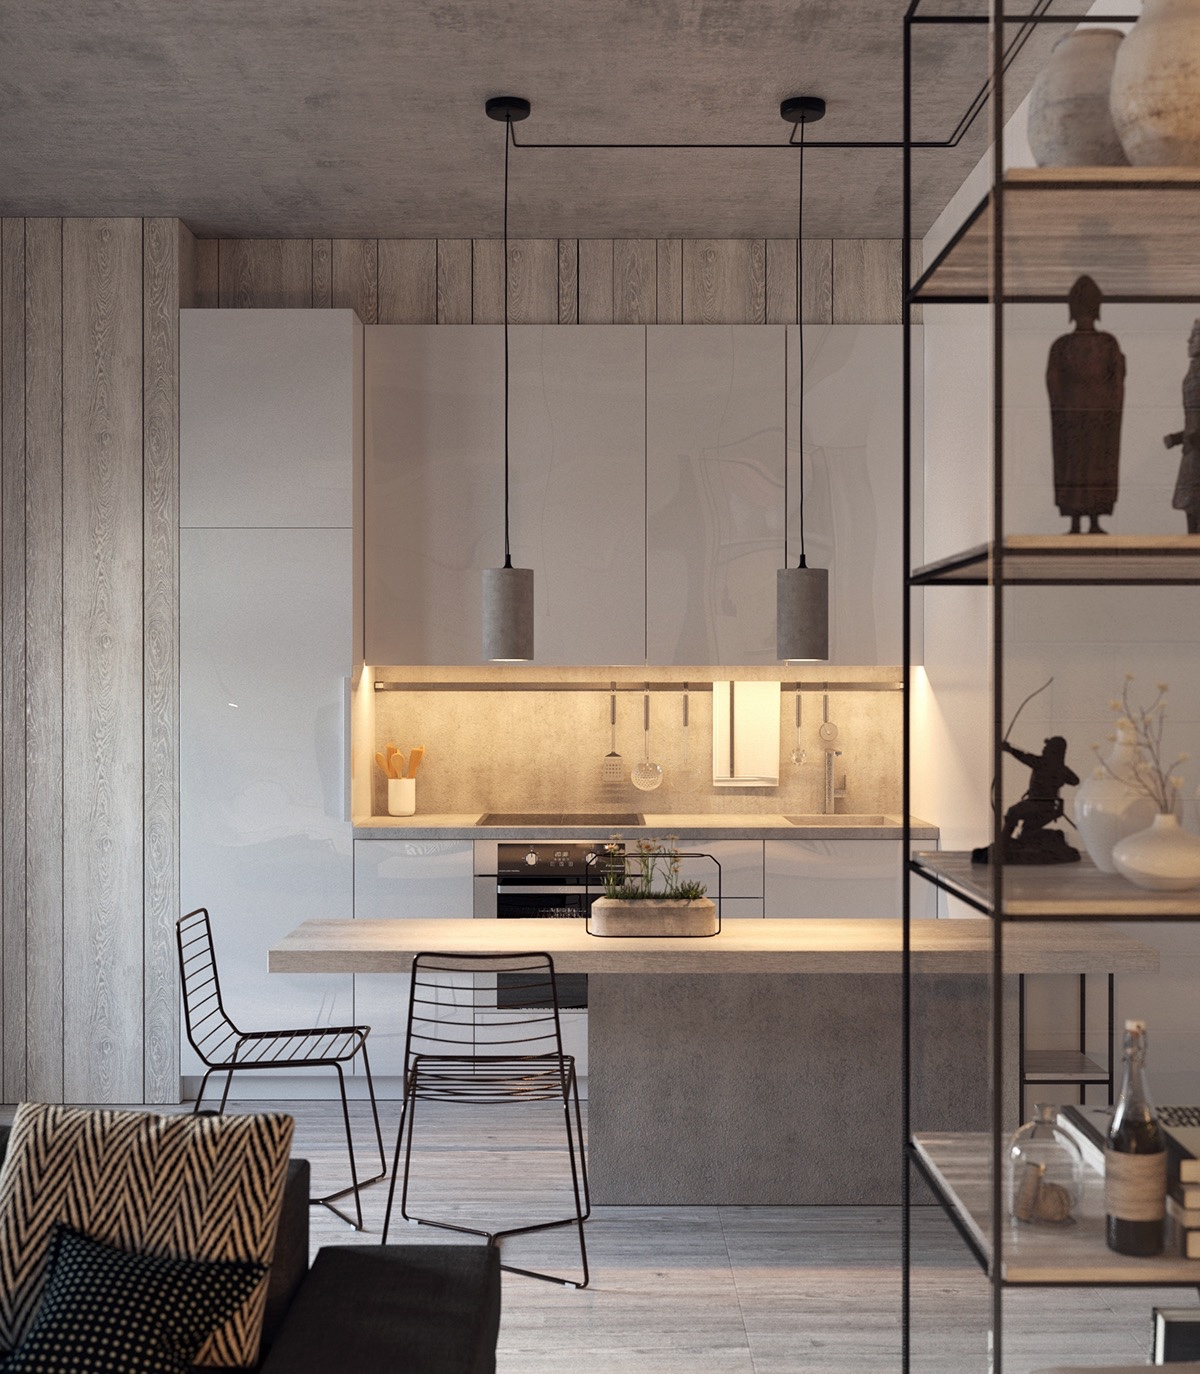 wood-and-light-grey-kitchen-LED-lit-inlet